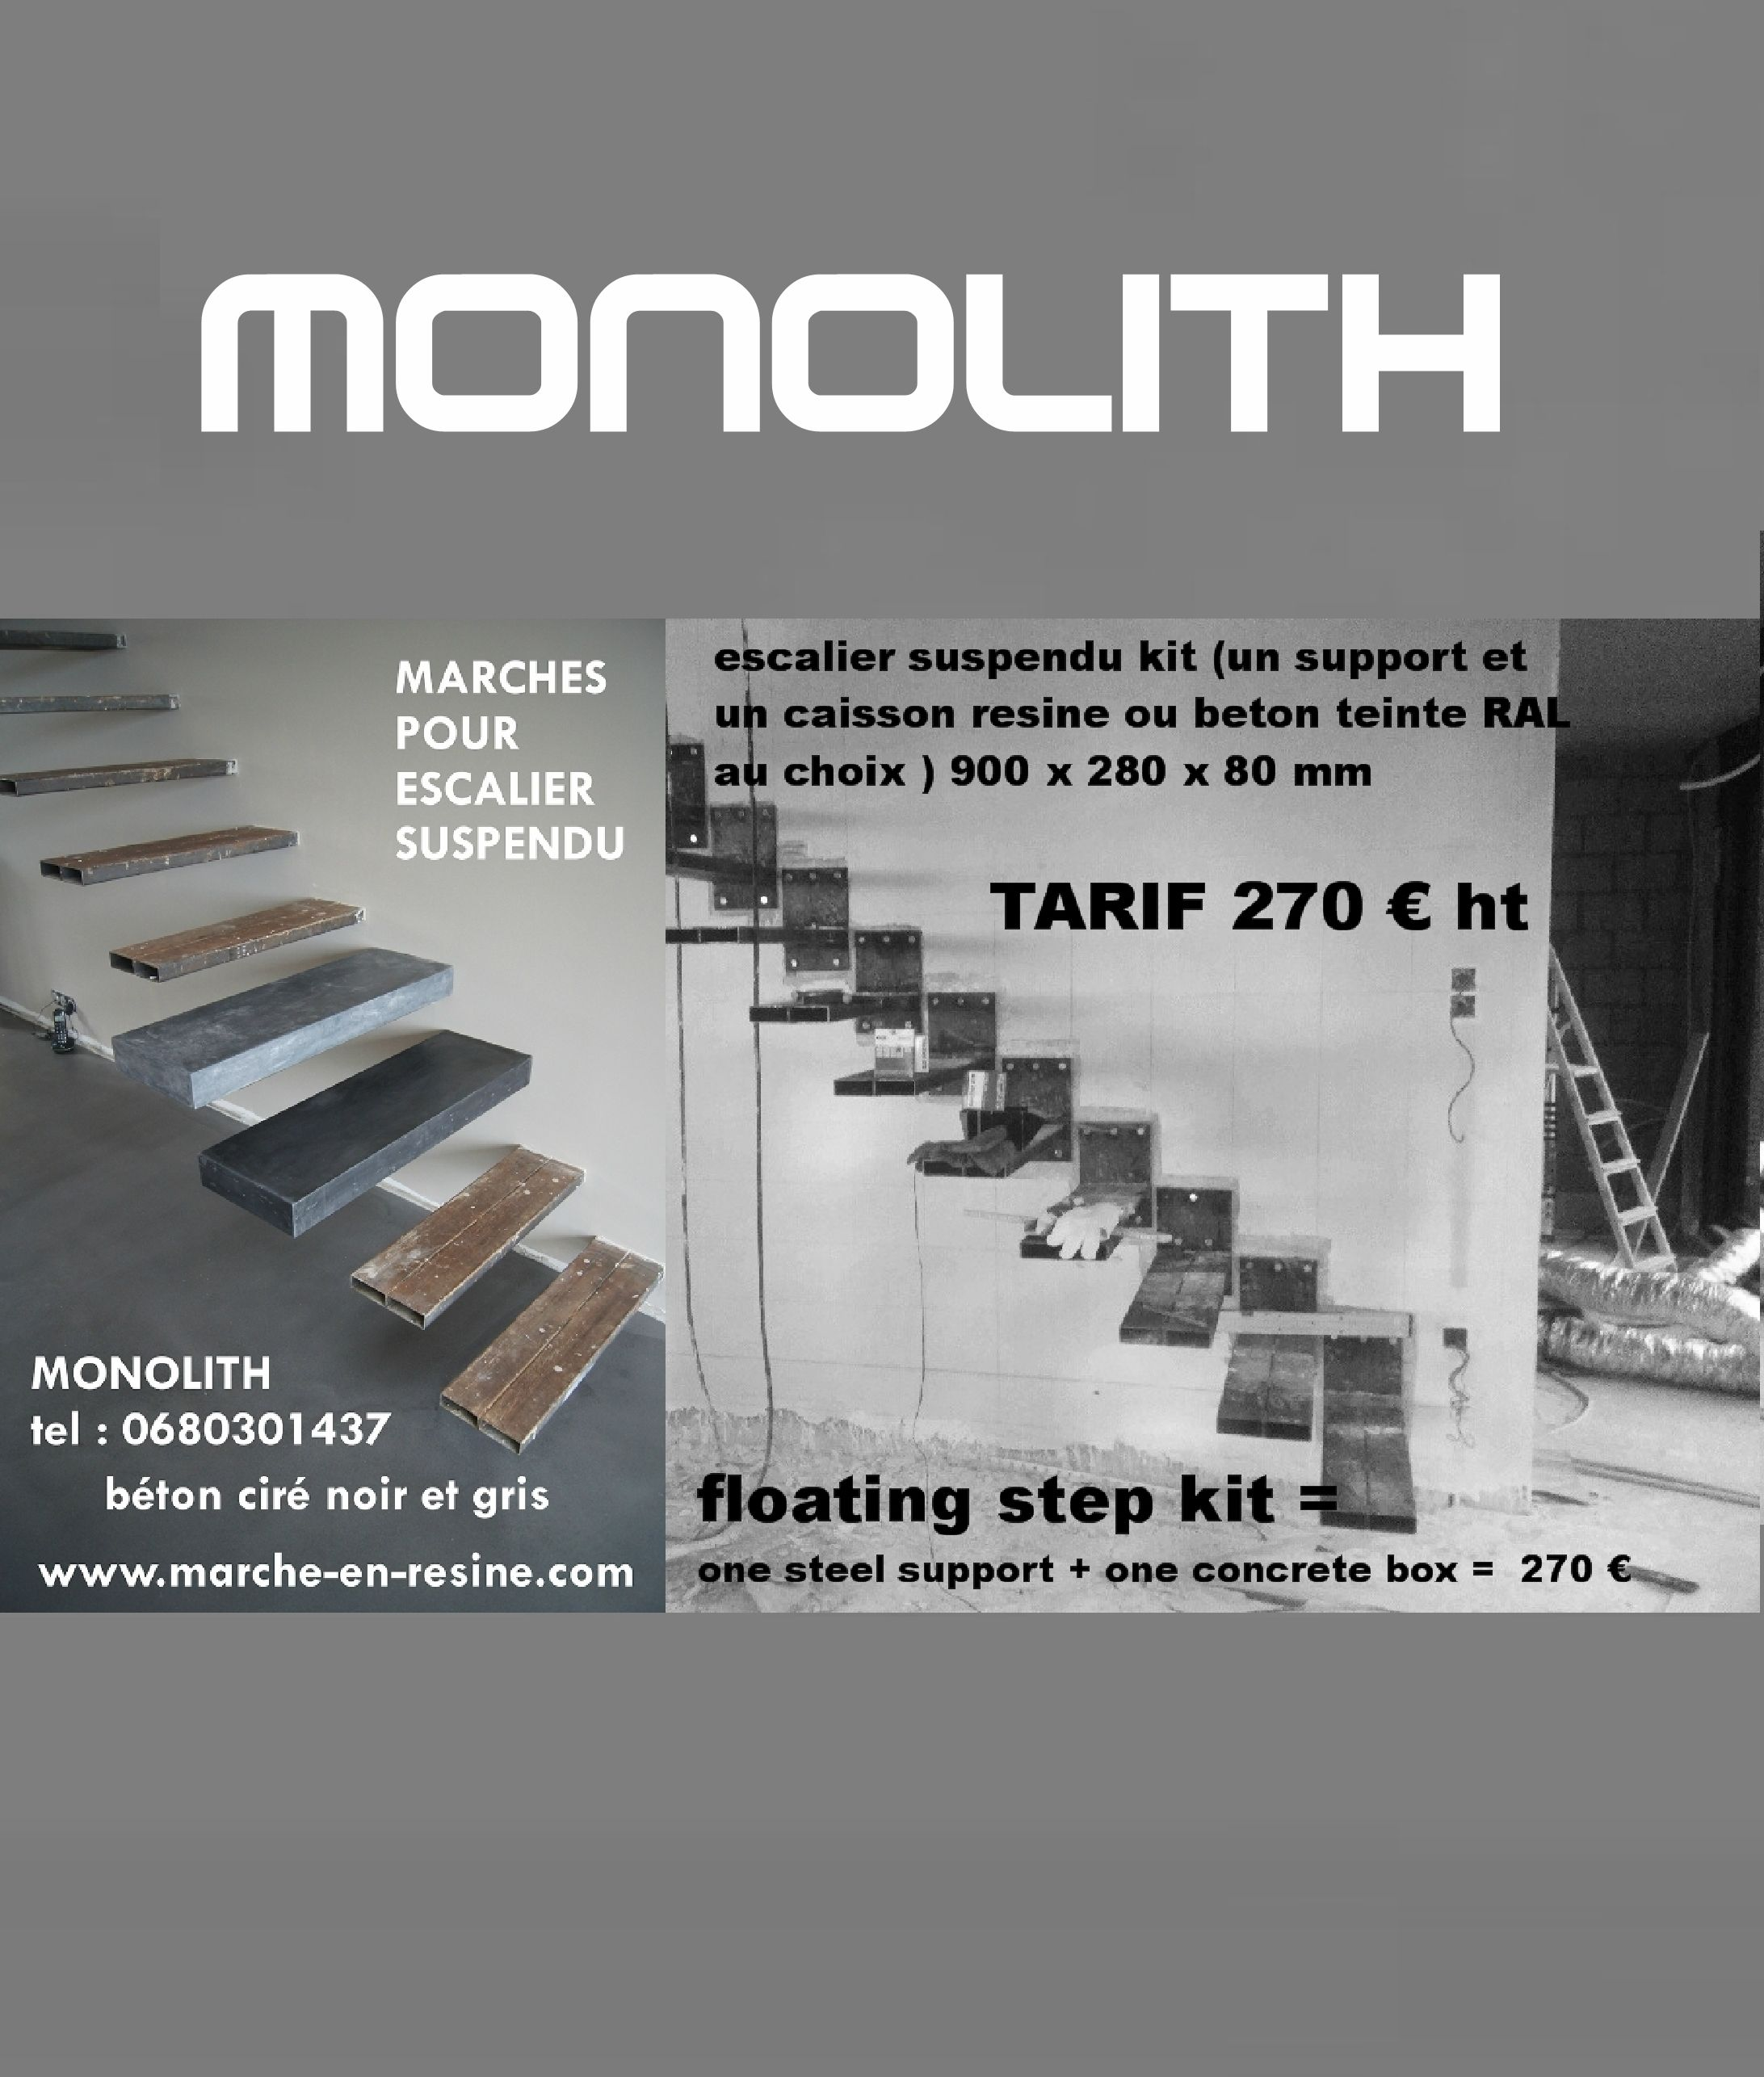 Wonderful #escalier Flottant #escaliersuspendu #floating Stair #floating Stair Kit  #concrete Floating